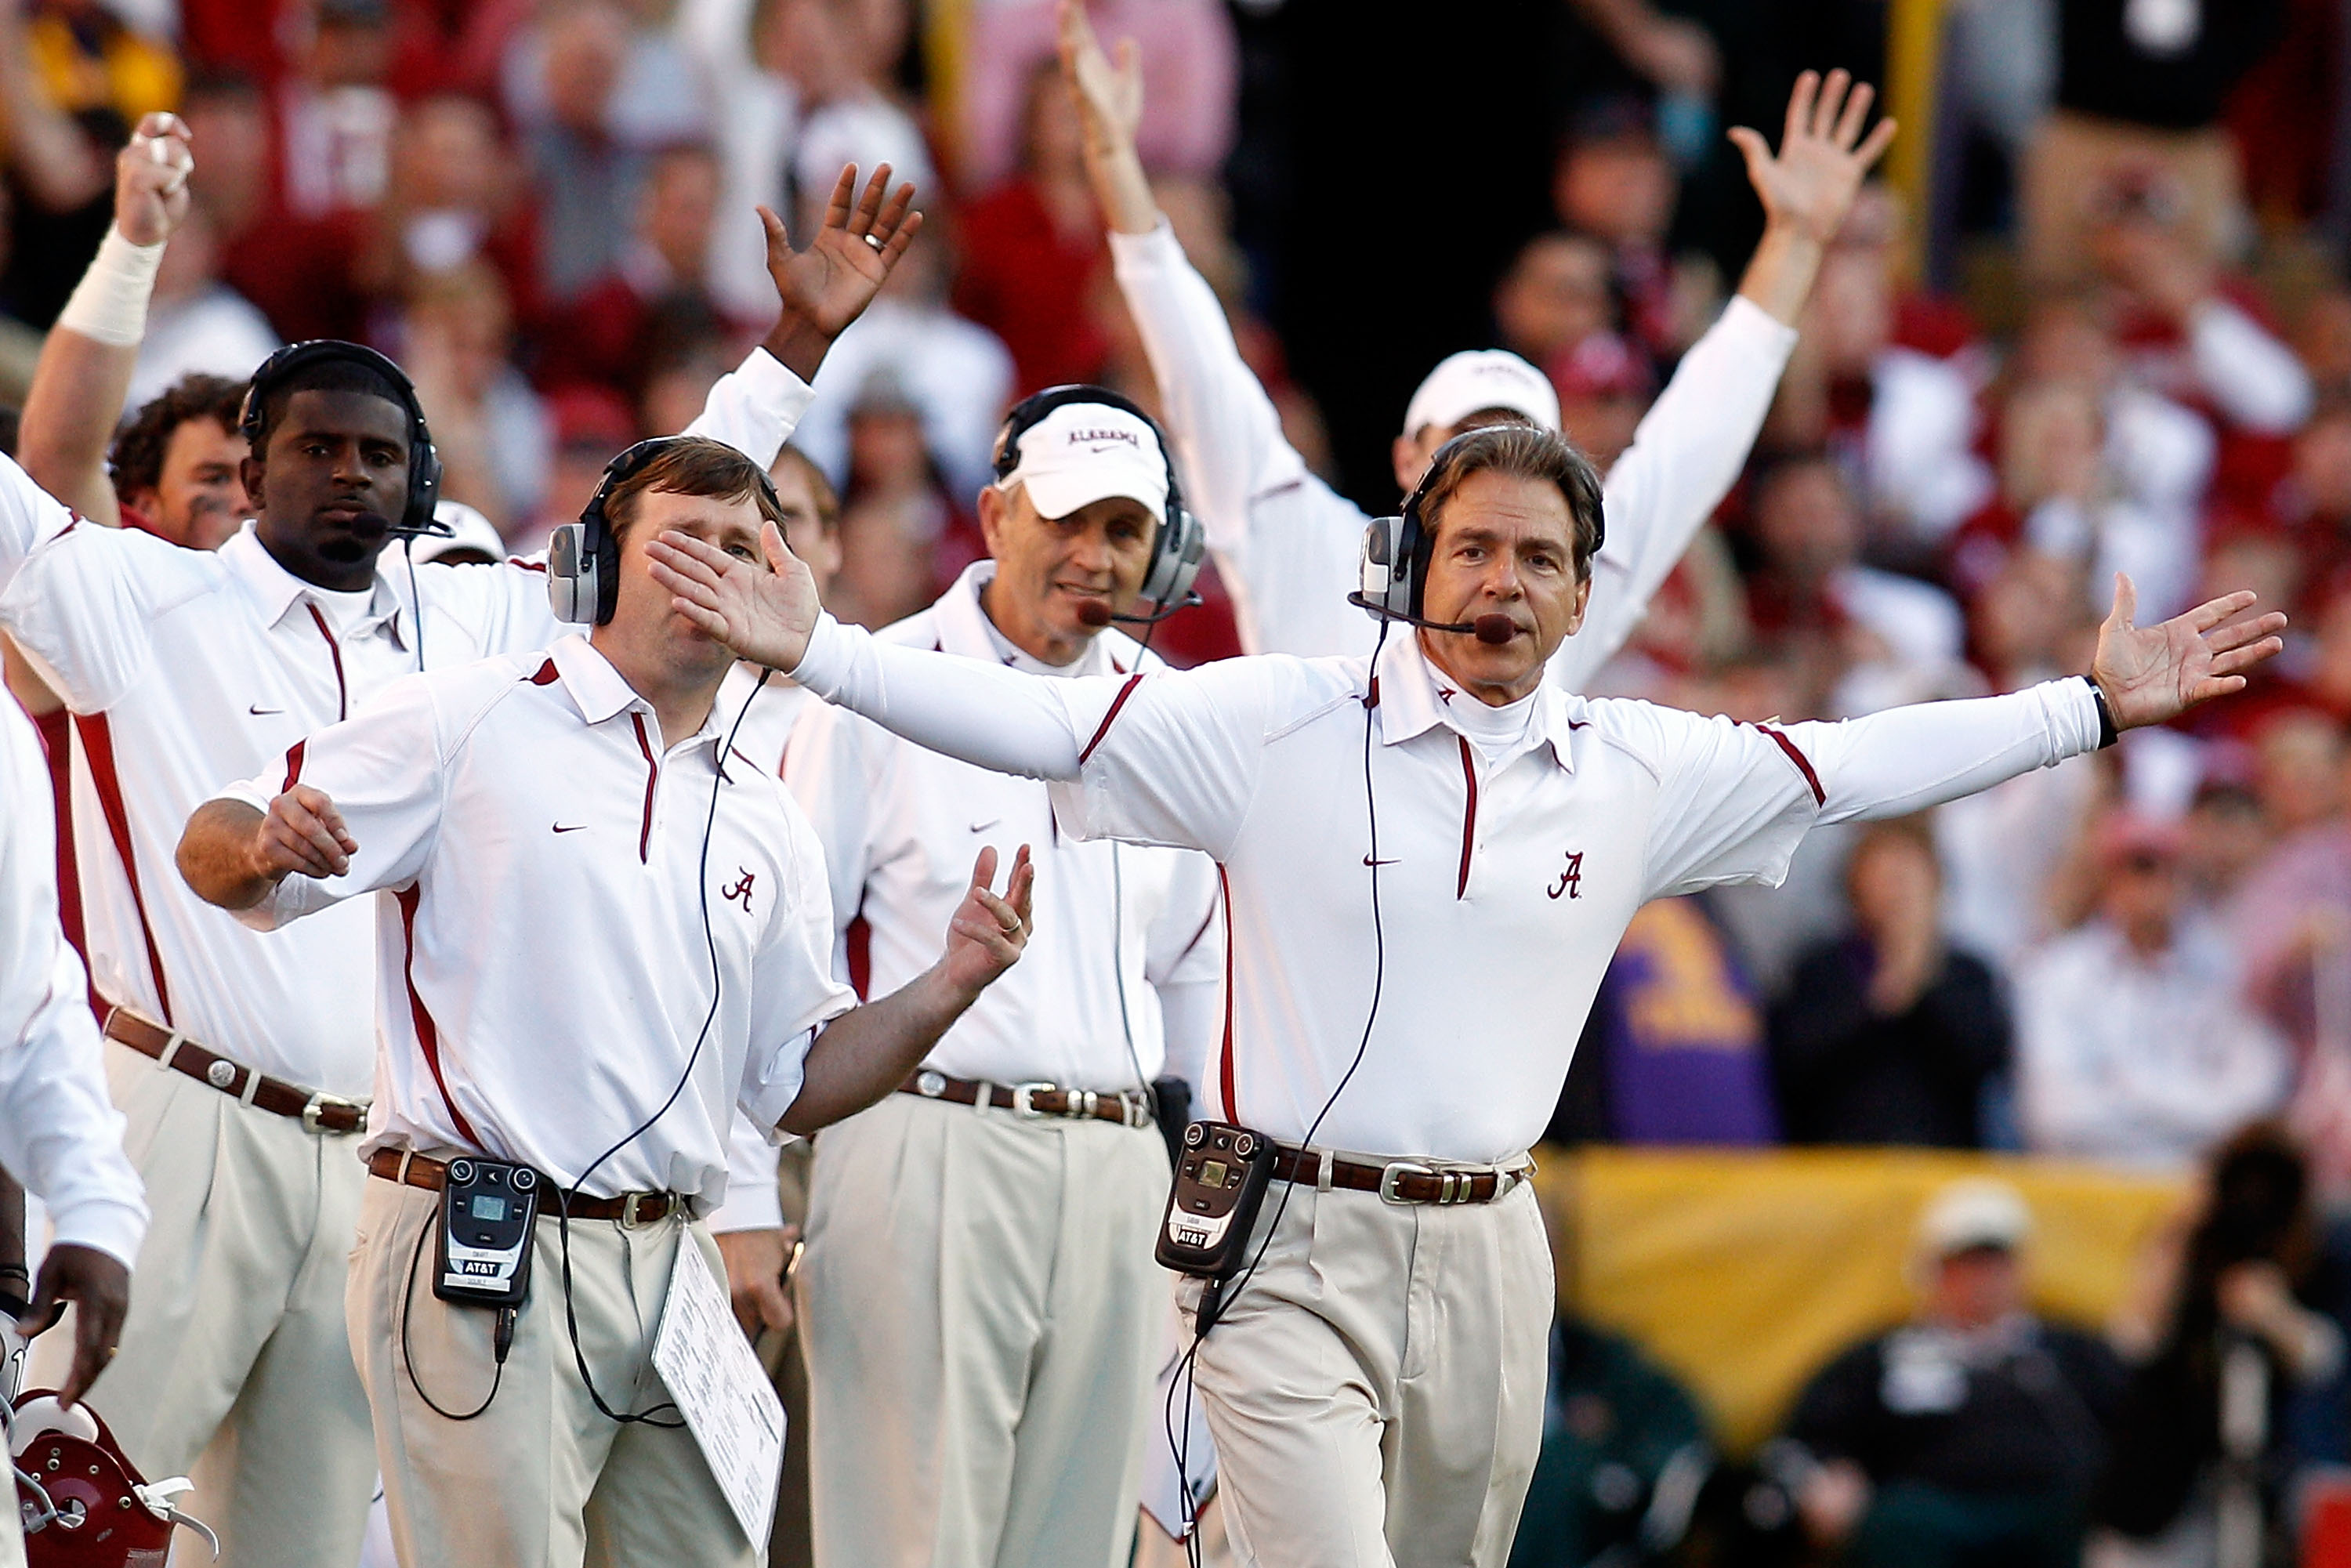 BATON ROUGE, LA - NOVEMBER 06:  Head coach Nick Saban of the Alabama Crimson Tide reacts to a play during the game against the Louisiana State University Tigers at Tiger Stadium on November 6, 2010 in Baton Rouge, Louisiana. The Tigers defeated the Crimso